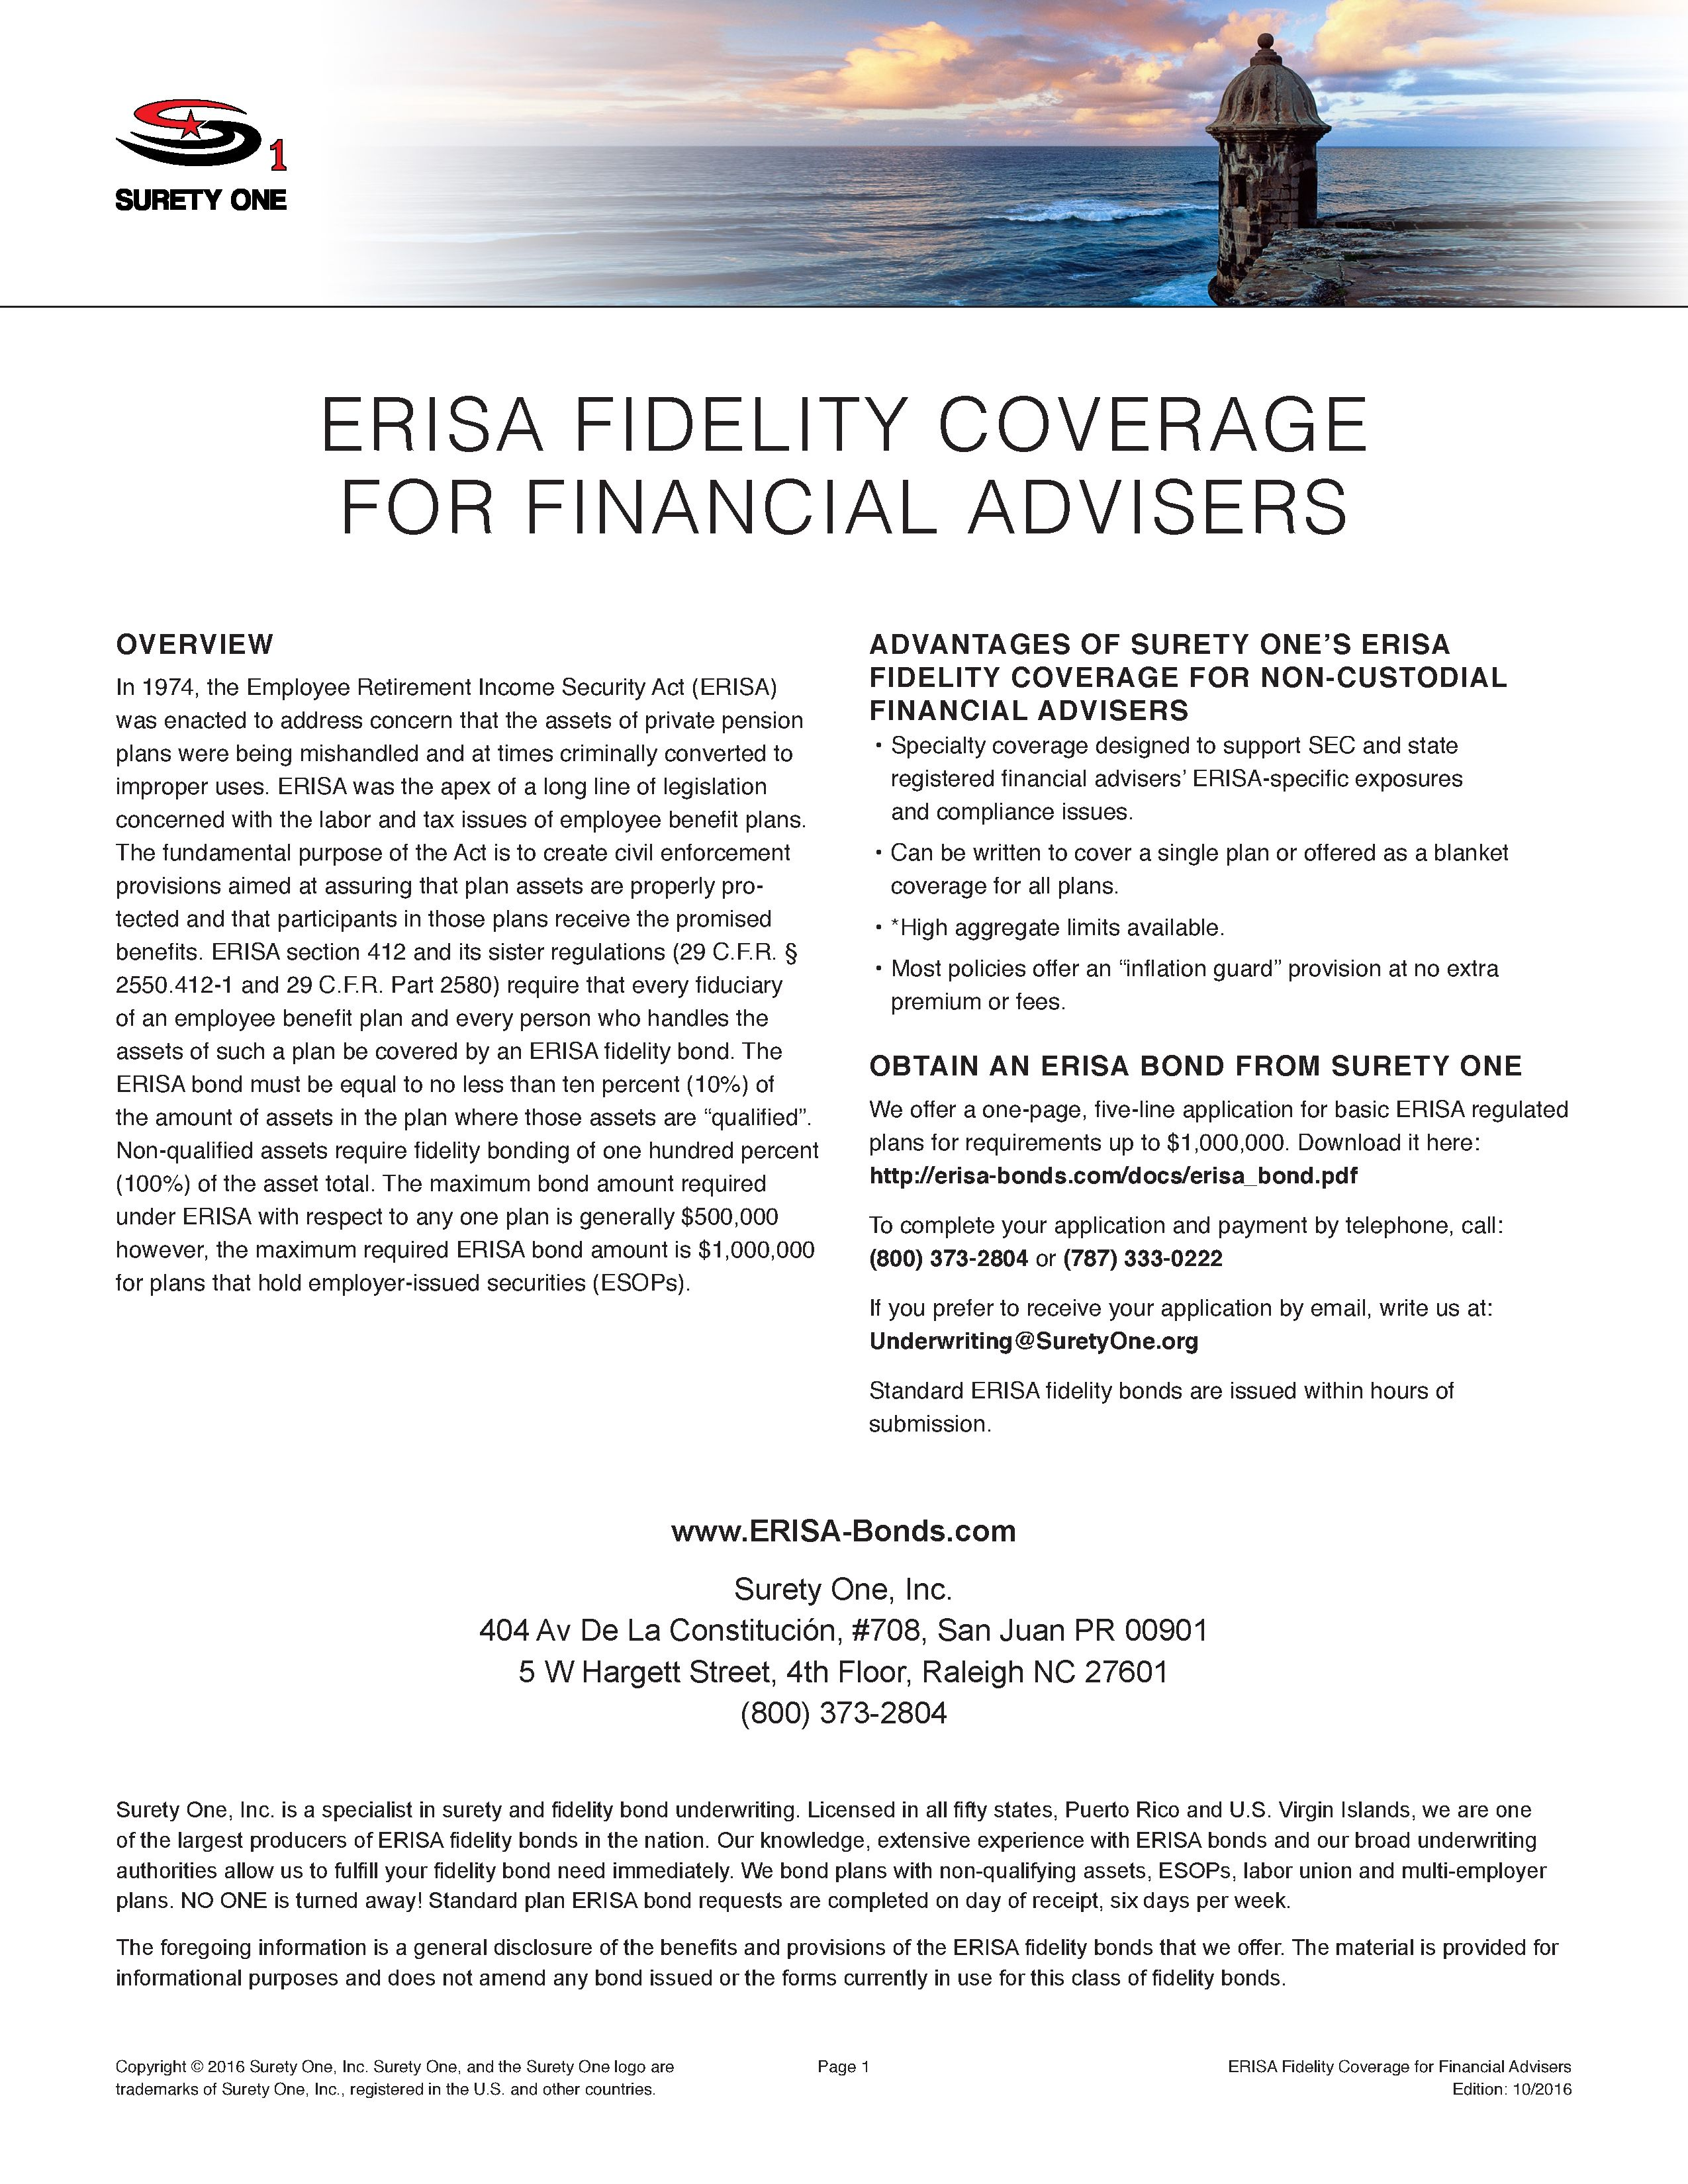 New Erisa Compliant Coverage Is Now Available For Independent